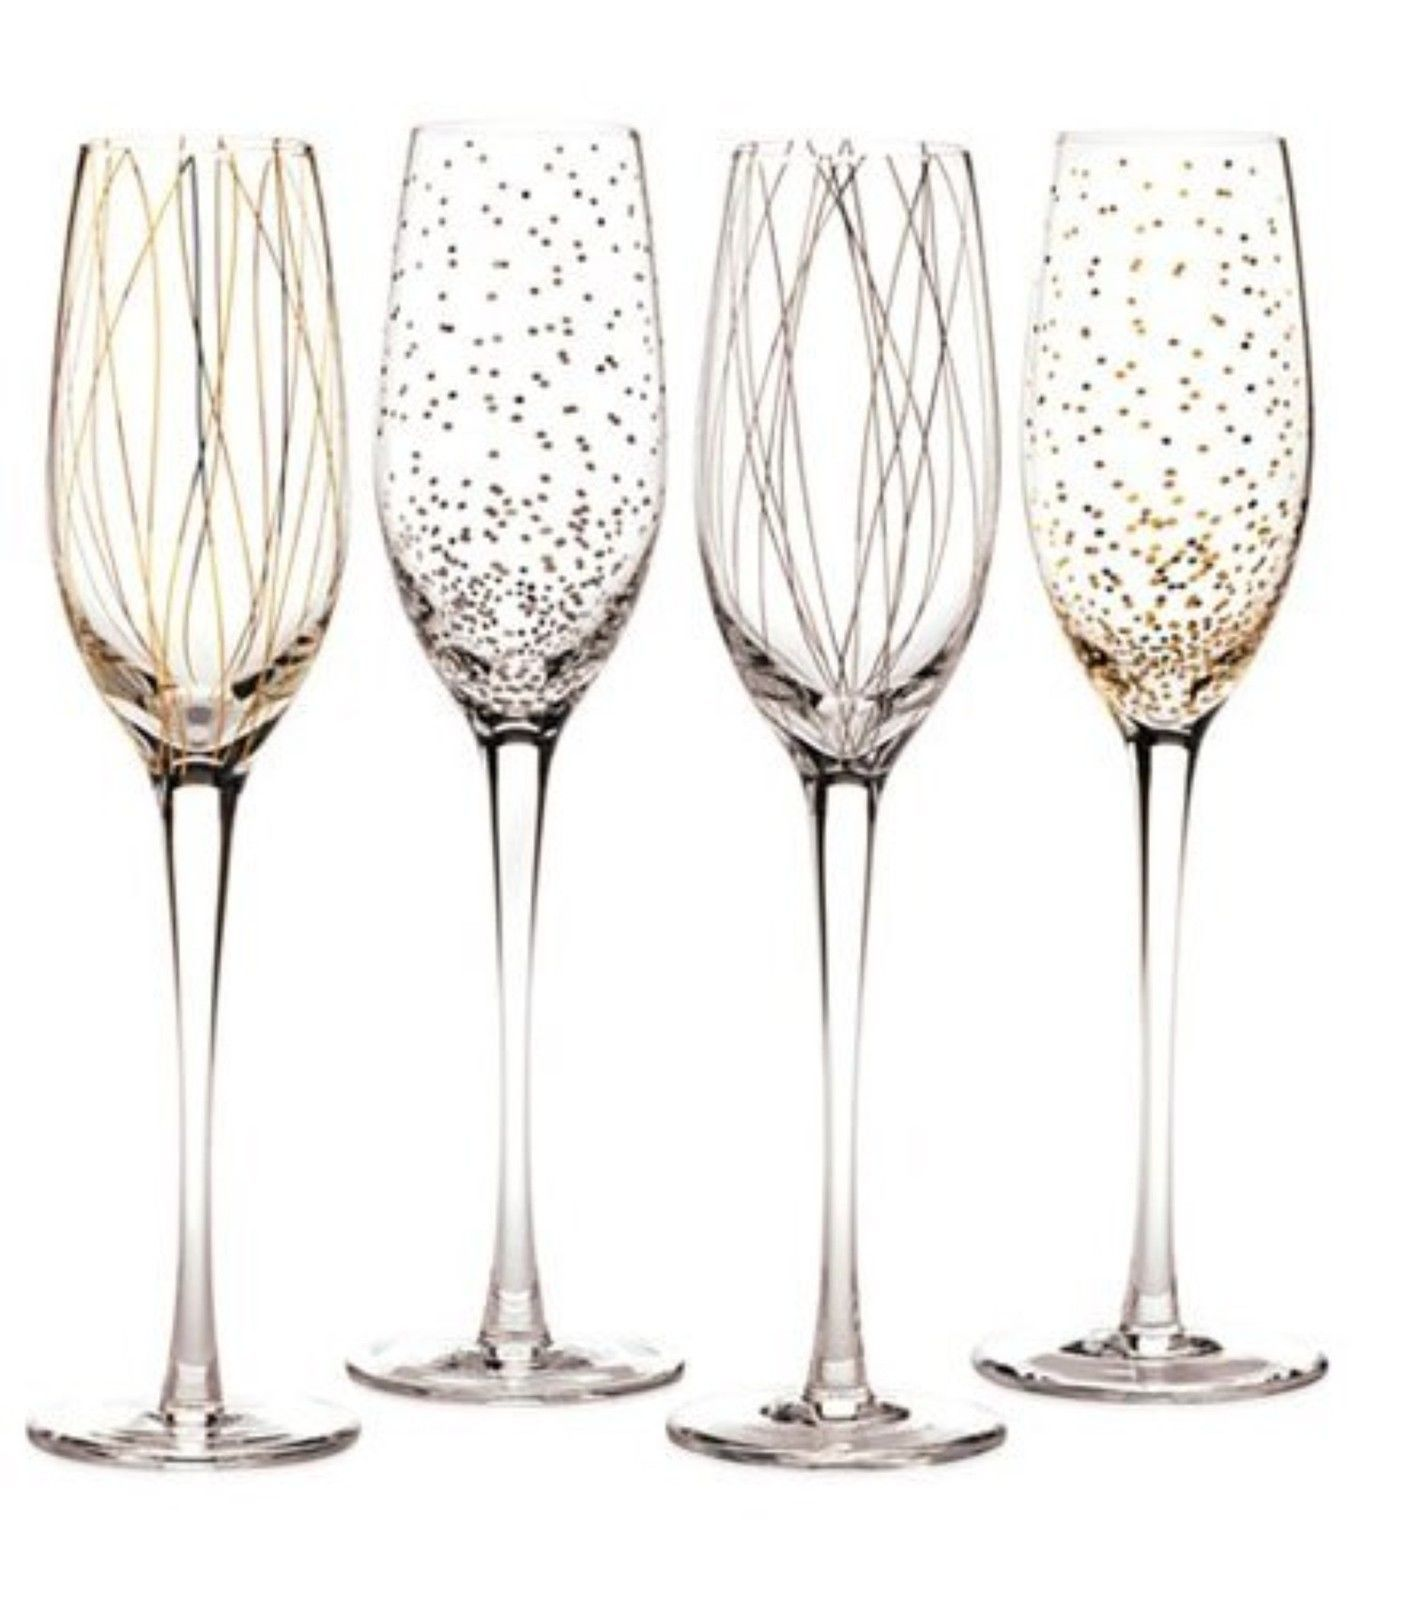 Nice Pattern On The Mikasa Wine Glasses